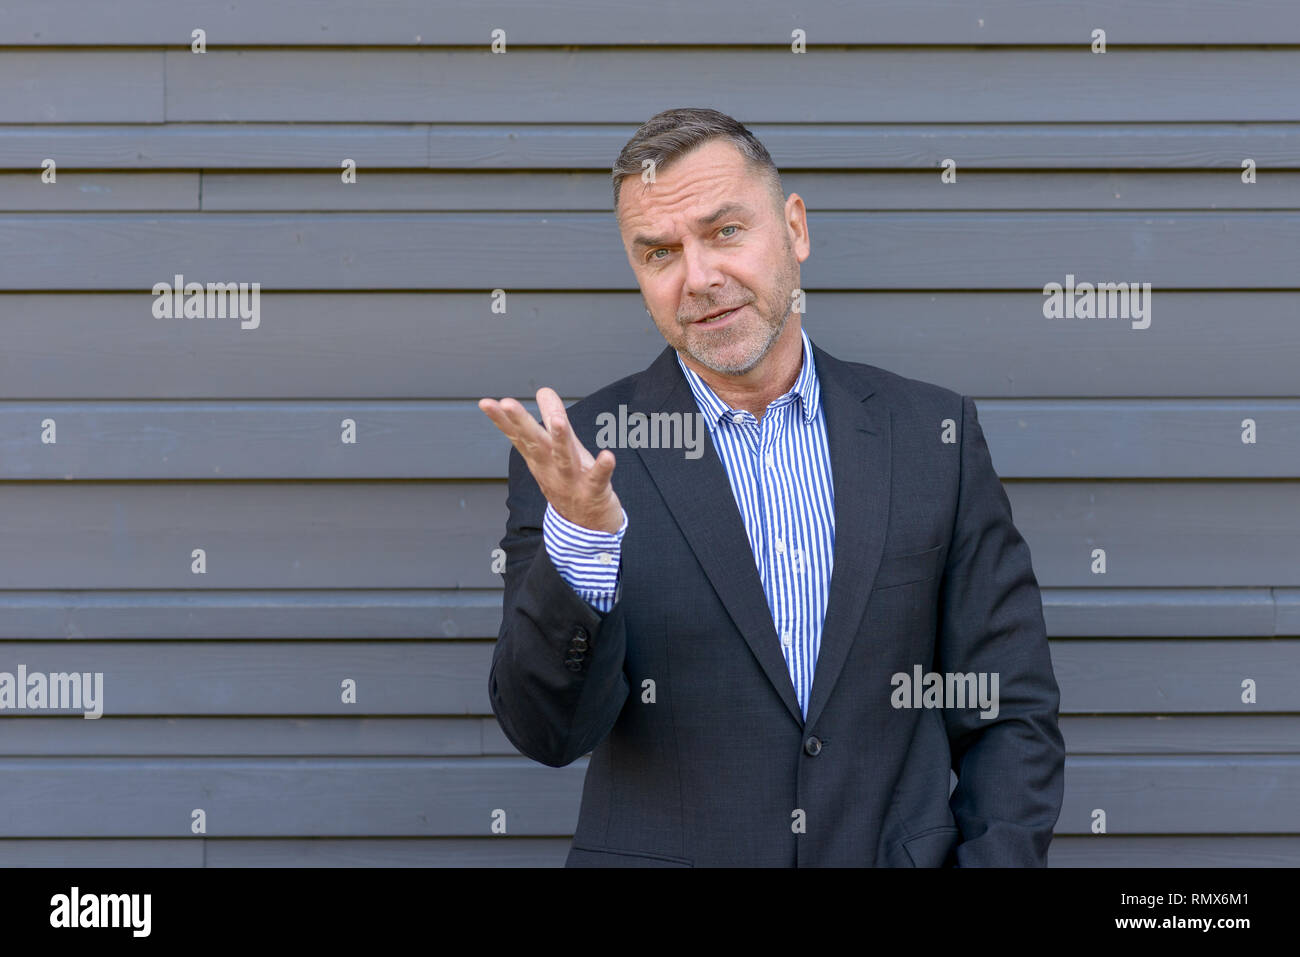 Persuasive businessman gesturing with his hand as he makes a point or explains with a look of empathy against a grey wall with copy space - Stock Image